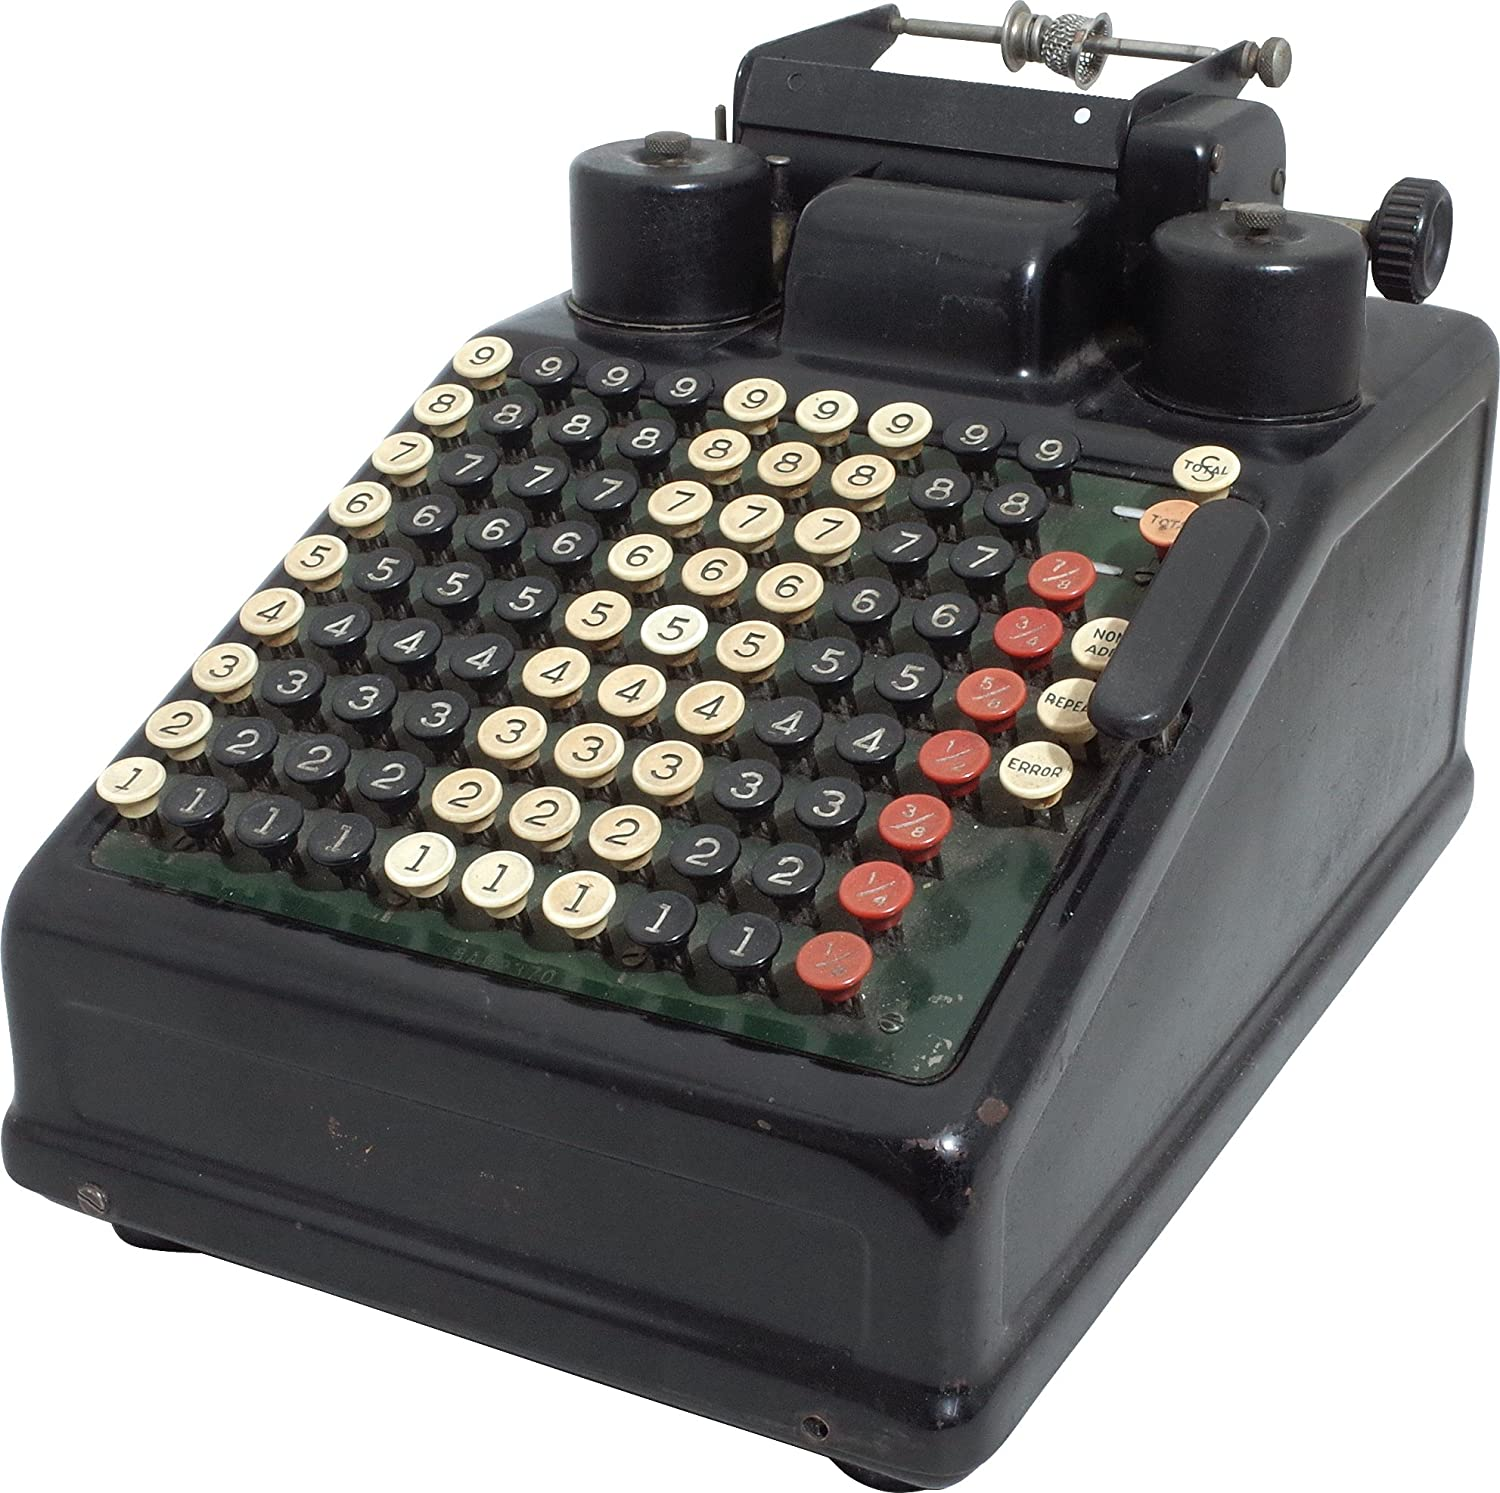 Burroughs Adding Machine バロース 加算機 Type-3 B06XCFF7HF